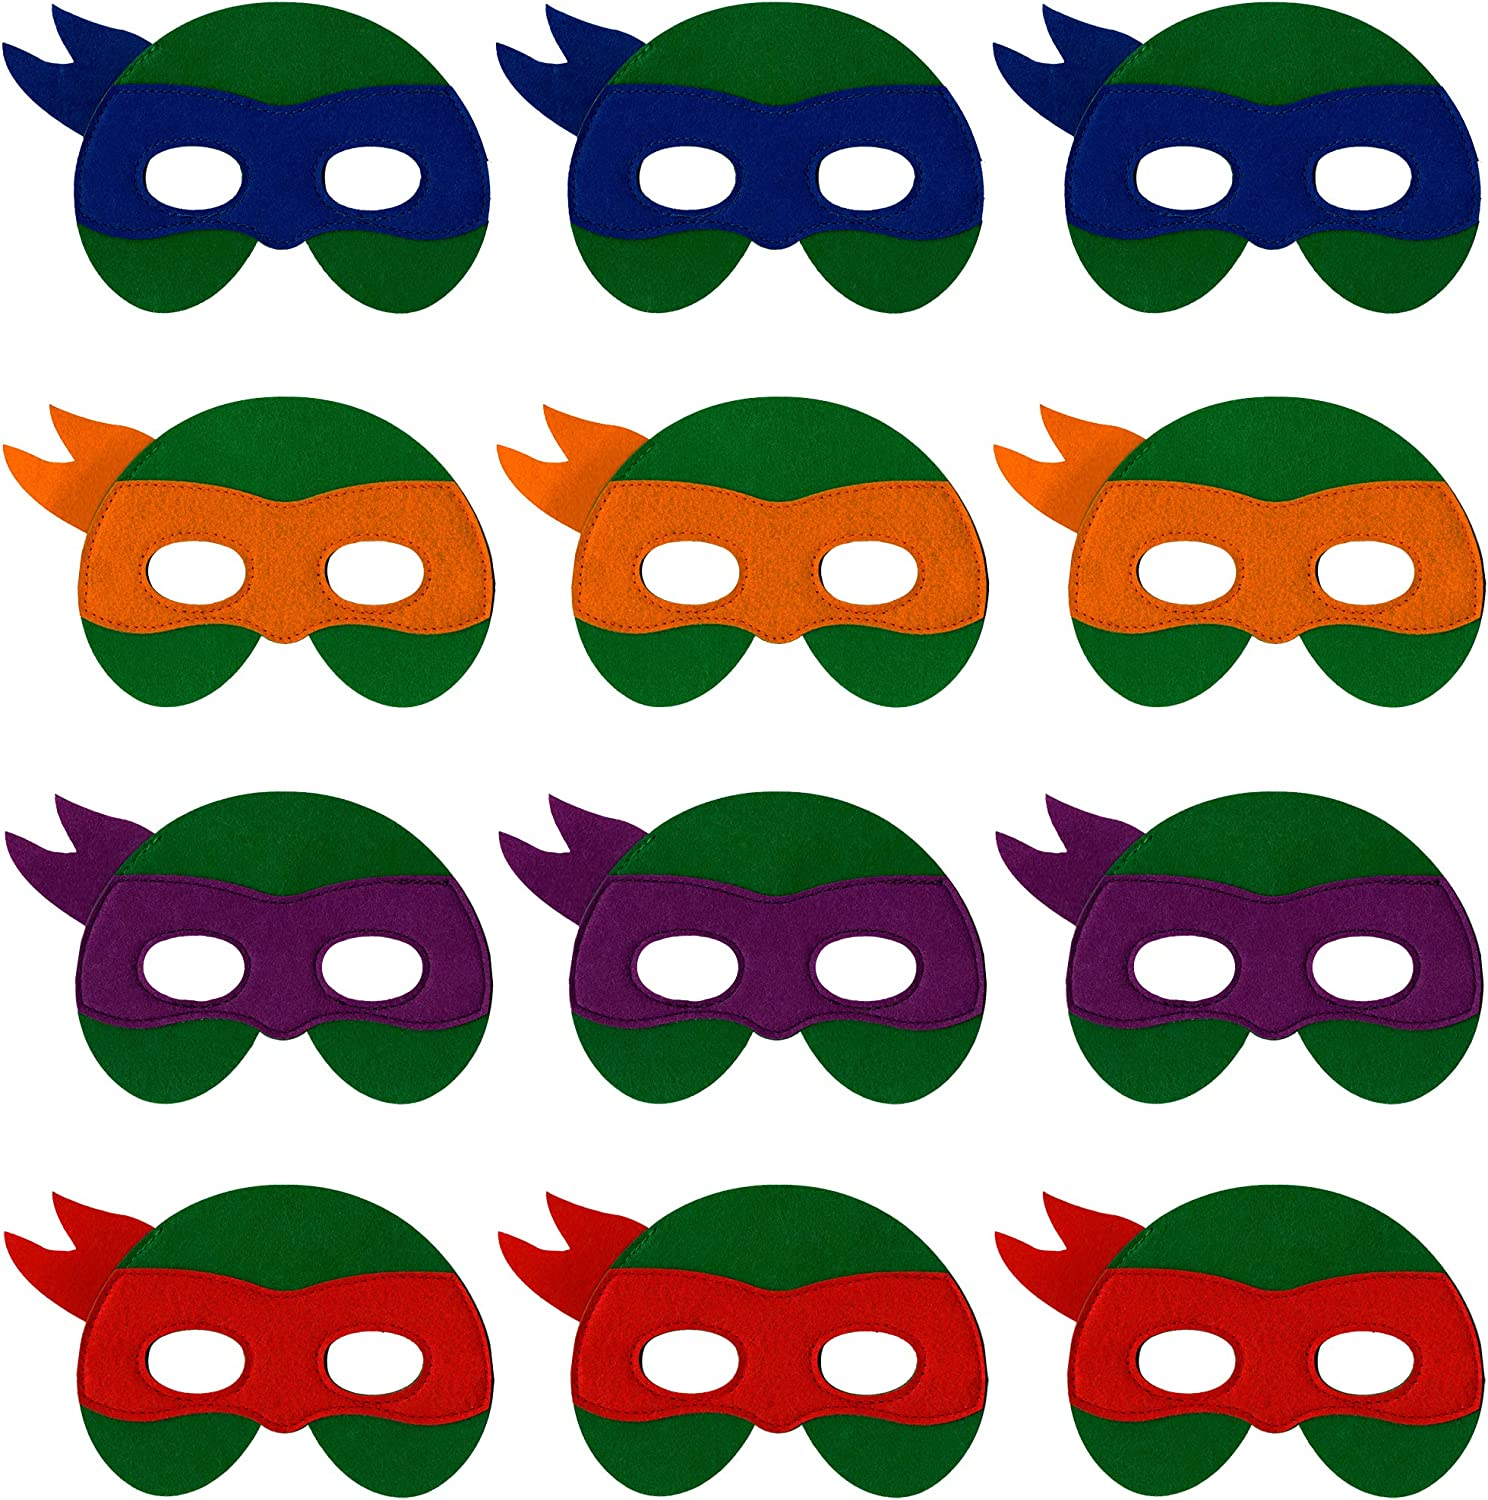 Little Seahorse Ninja Turtle Masks for Kids - 12 Felt Toy Masks, Best Birthday Party Ninja Turtles Supplies Favors for Goodie Bag, Gifts, etc